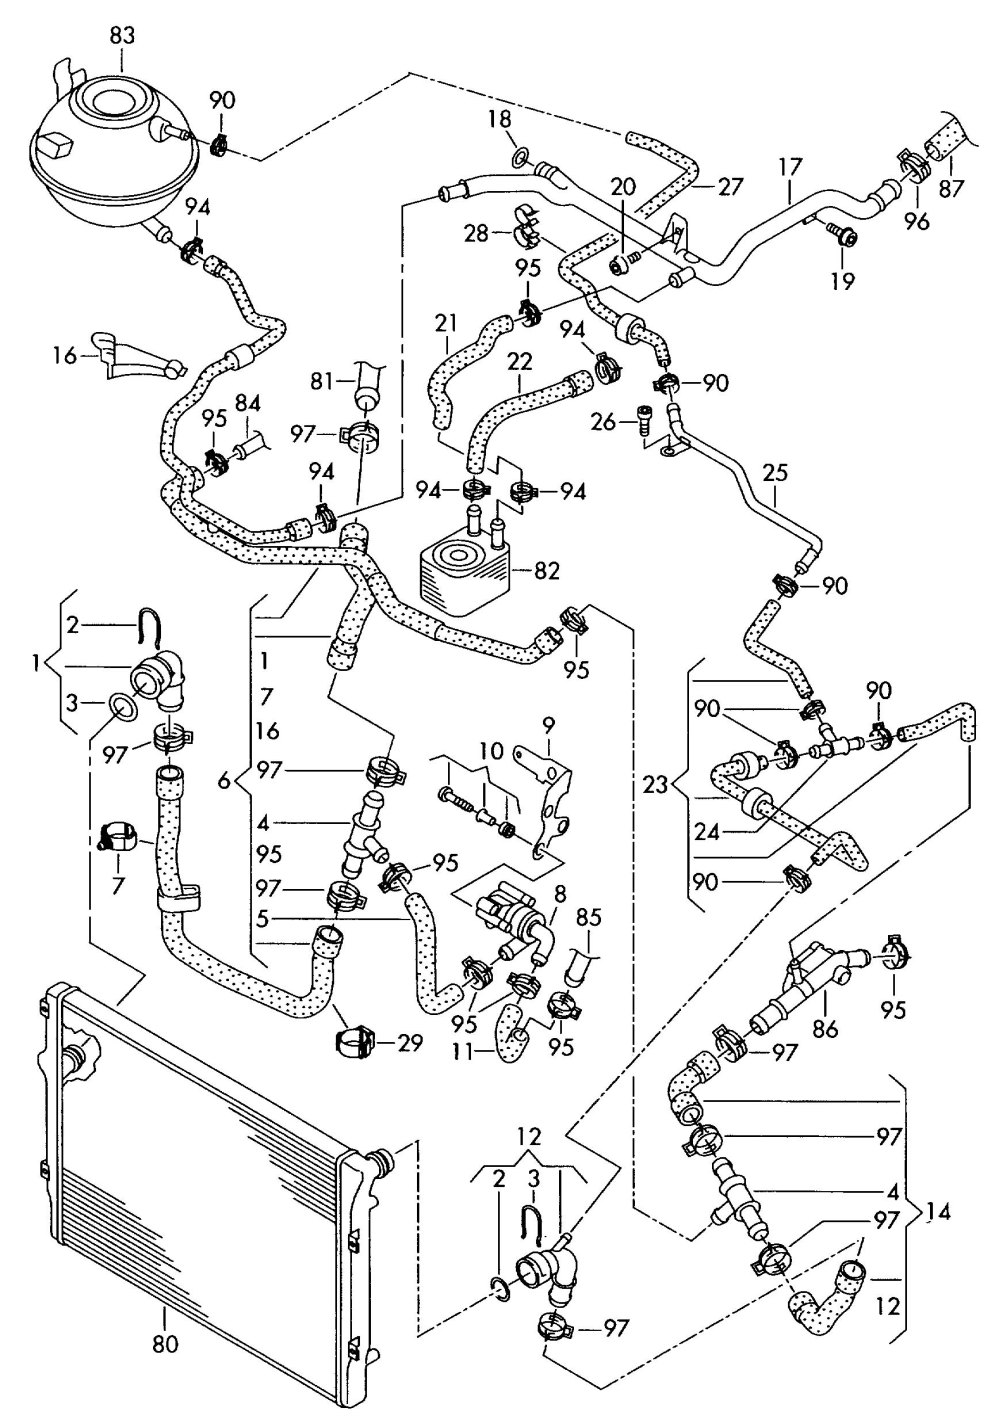 medium resolution of ford ranger manual transmission wiring diagram wiring library 2000 ford ranger transmission diagram ford wiring